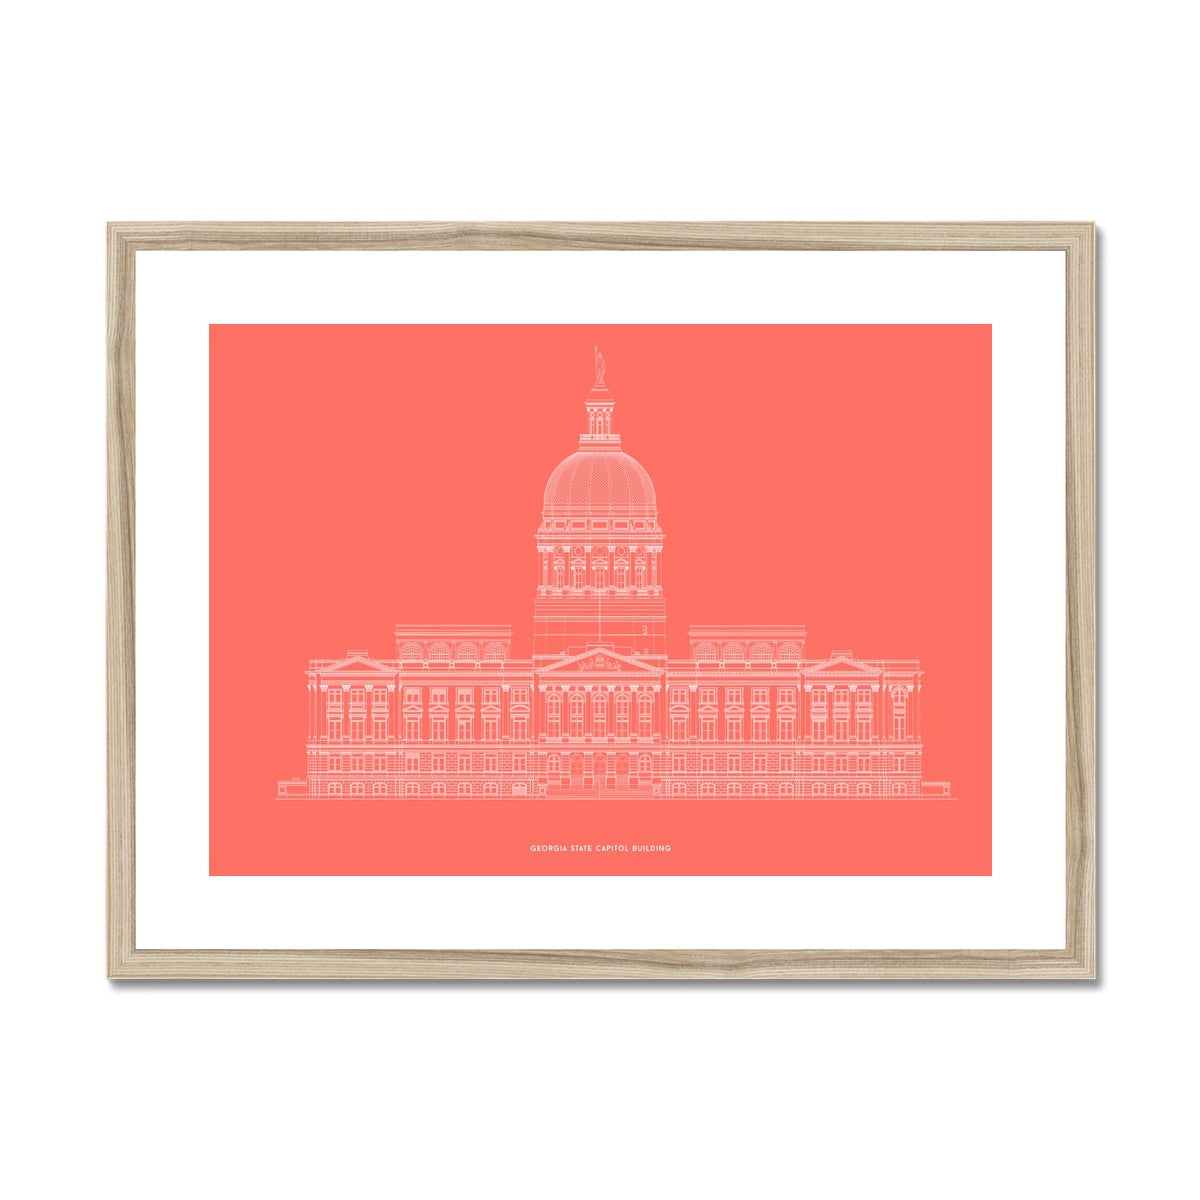 The Georgia State Capitol Building - West Elevation - Red -  Framed & Mounted Print